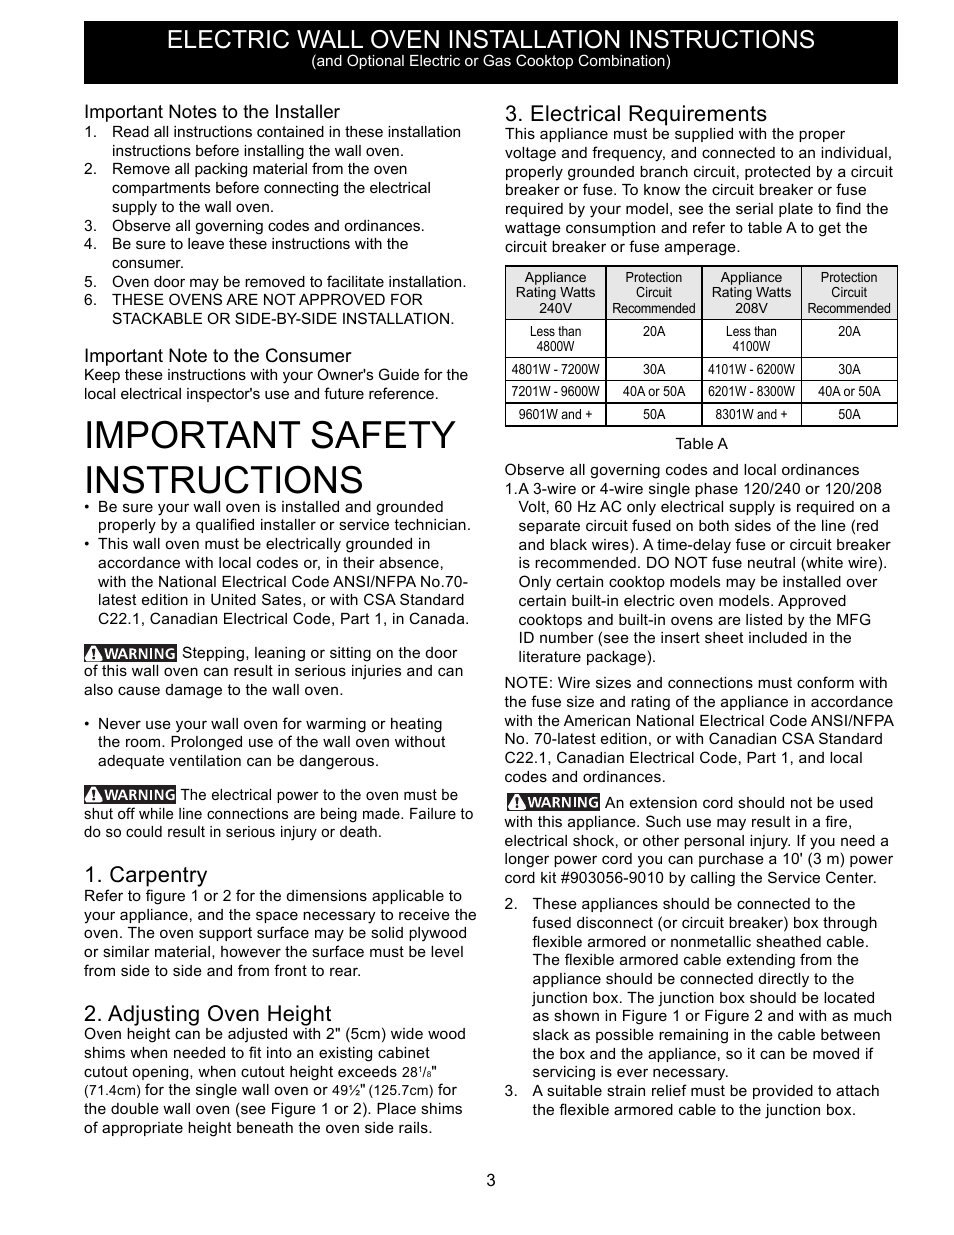 important safety instructions, electric wall oven installation instructions,  carpentry | frigidaire ffet2725ps user manual | page 3 / 24